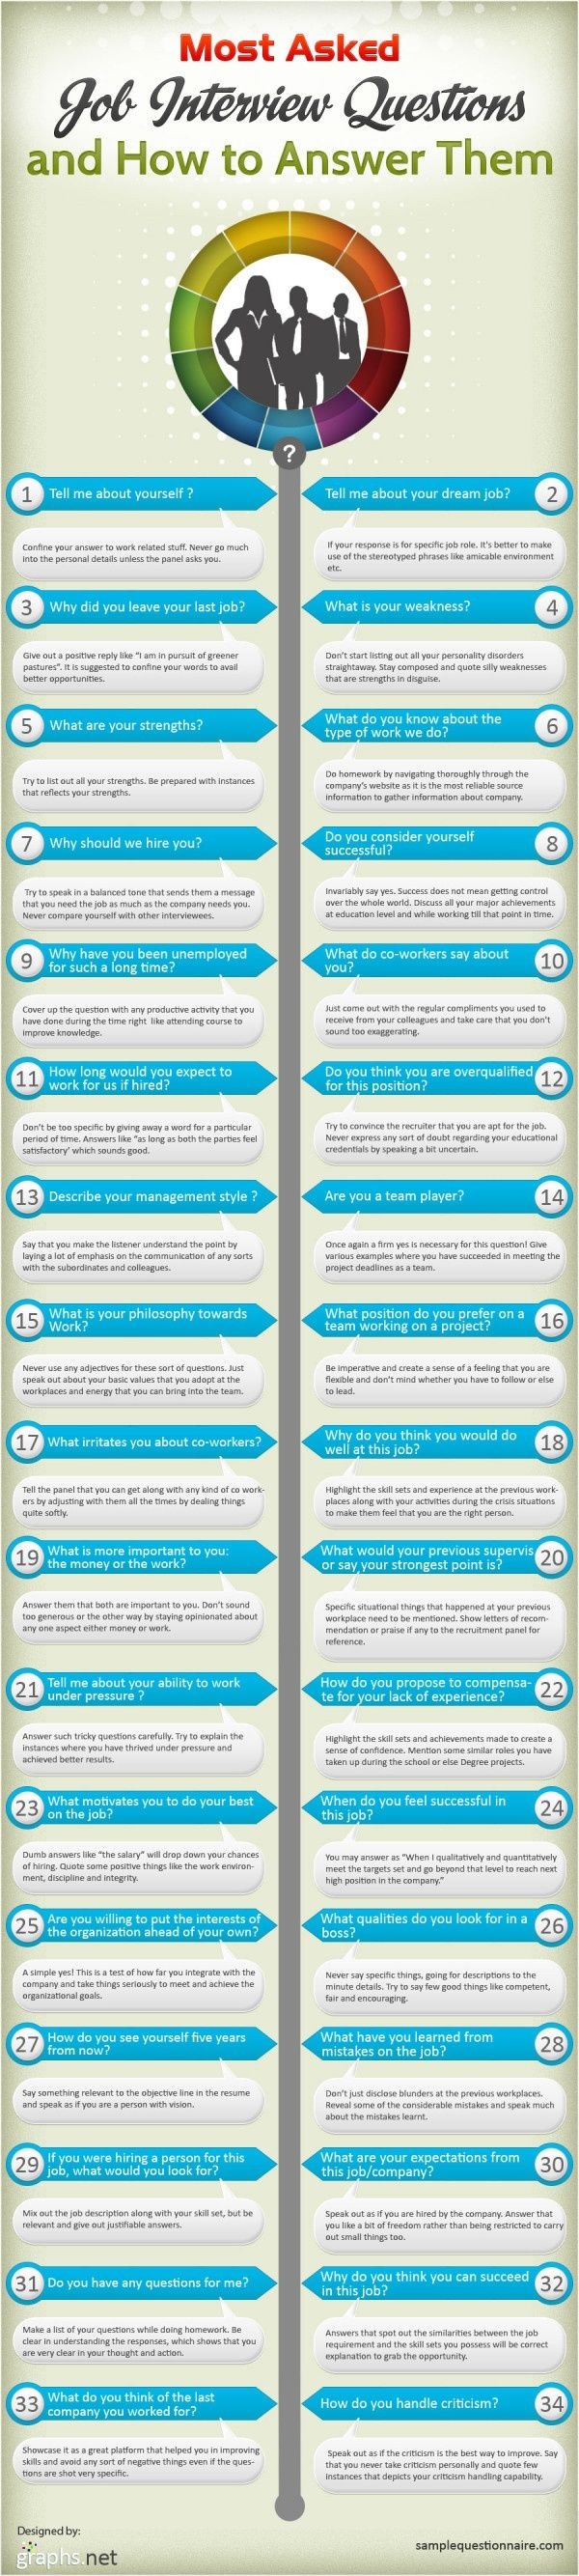 34 Most Asked Job Interview Questions & How To Answer Them.